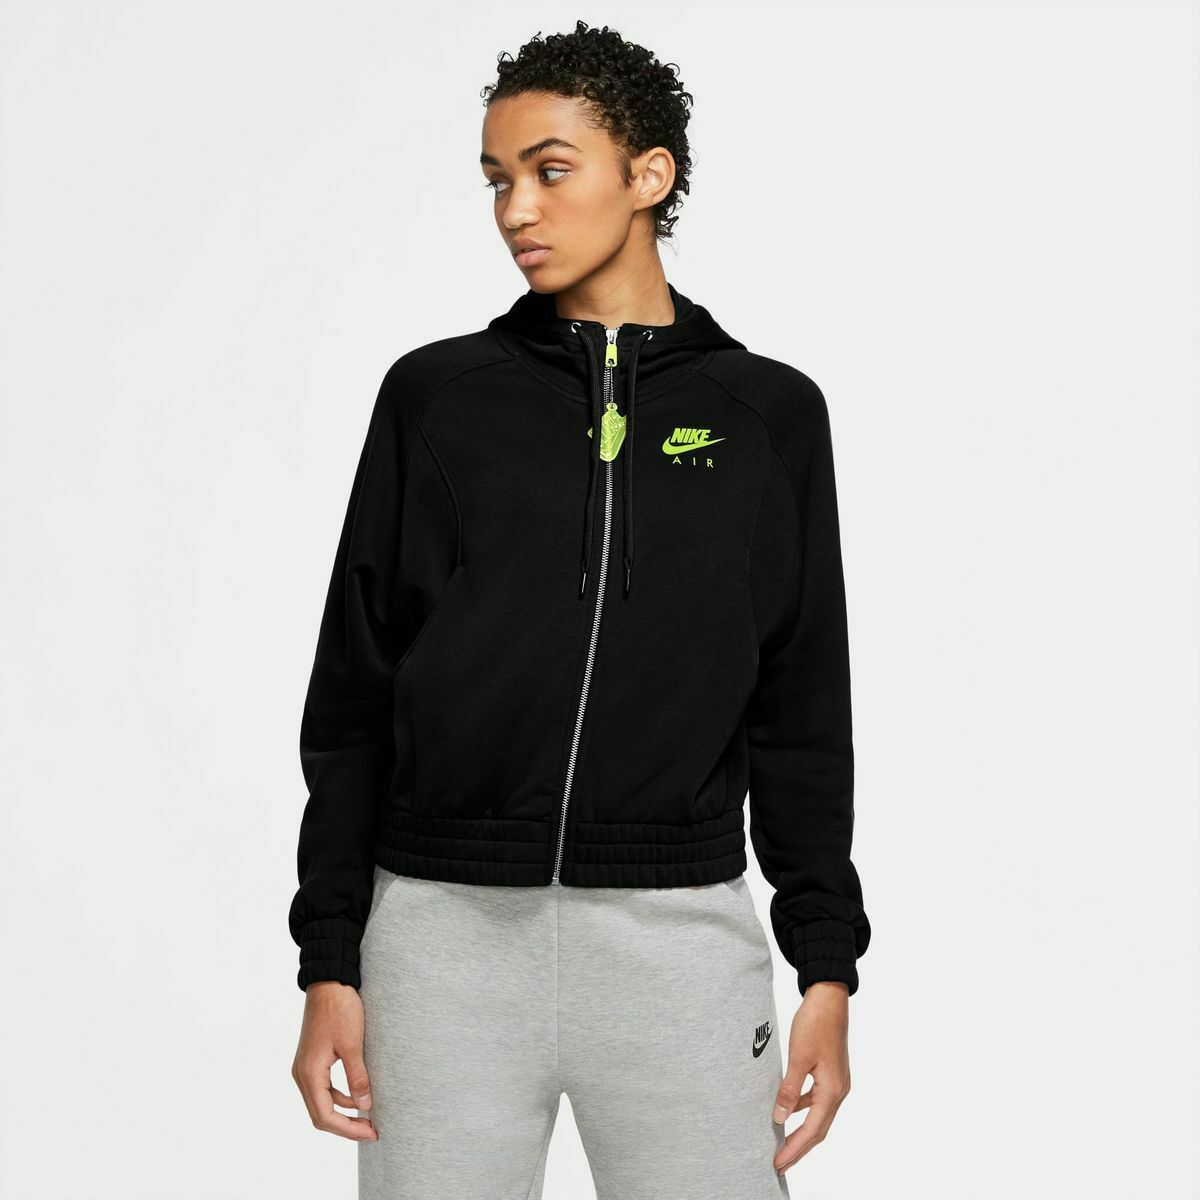 FELPA NIKE DONNA CU5442 011 FULL ZIP CON CAPPUCCIO ORIGINALE AIR W NSW HOODIE